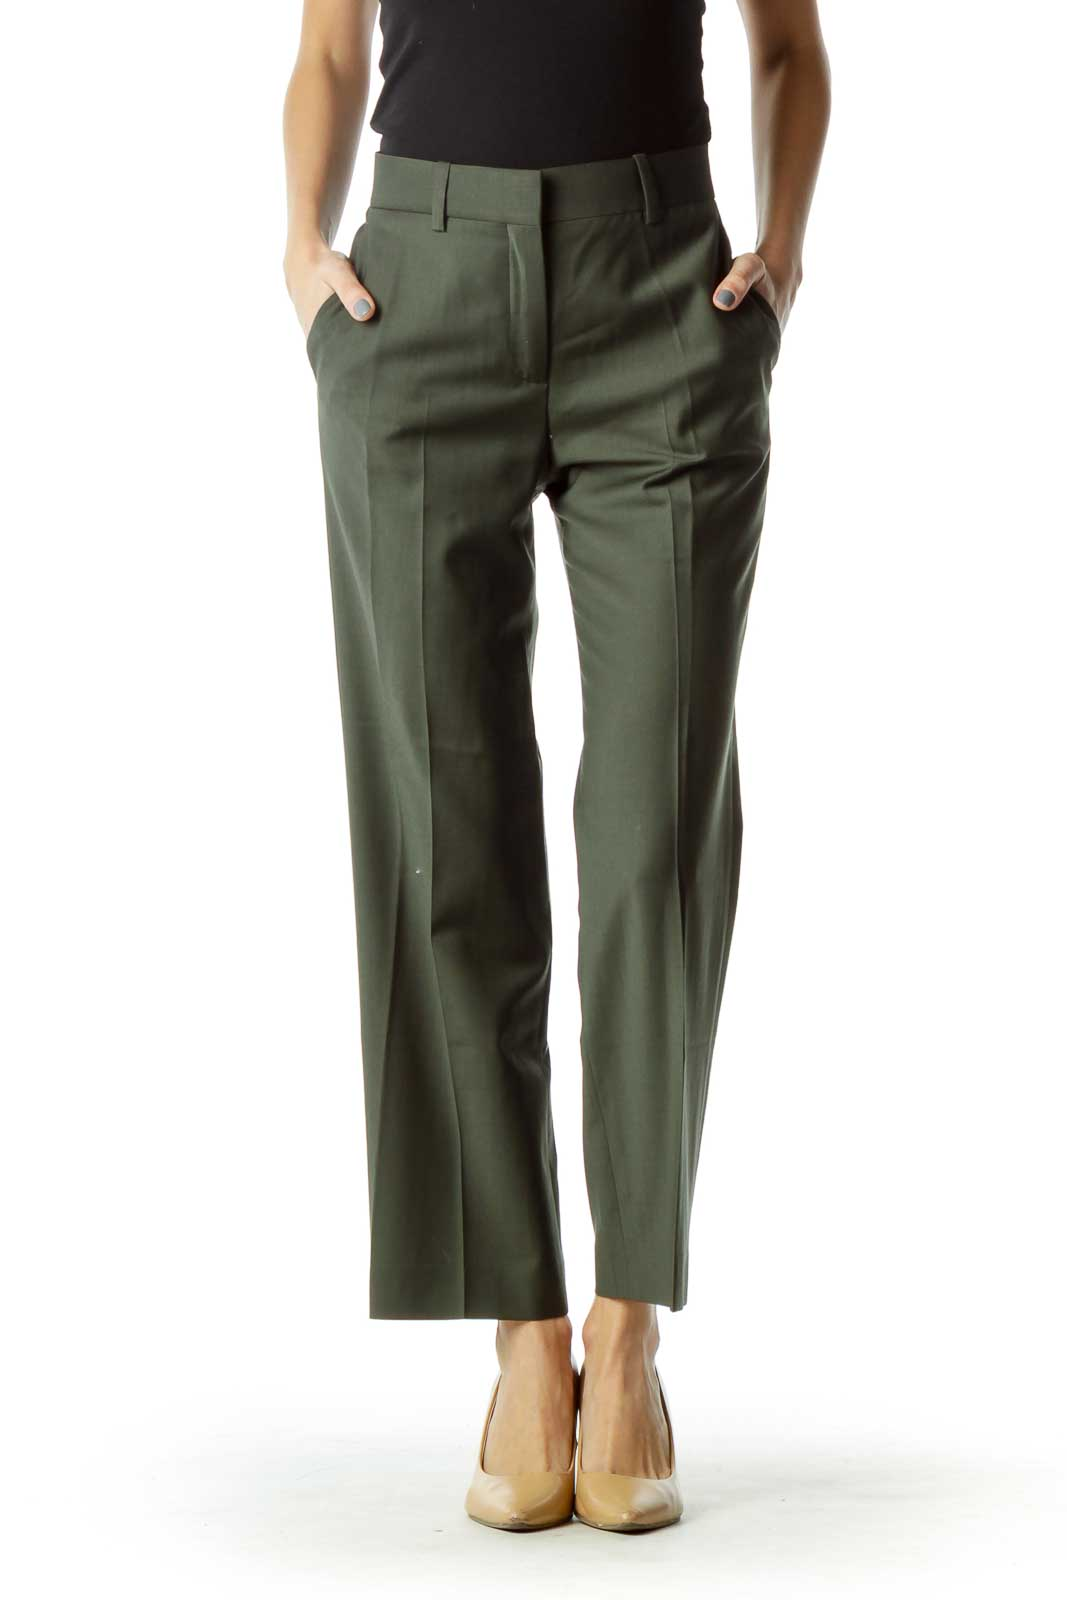 Green Pocketed Zipper-Fly Slacks